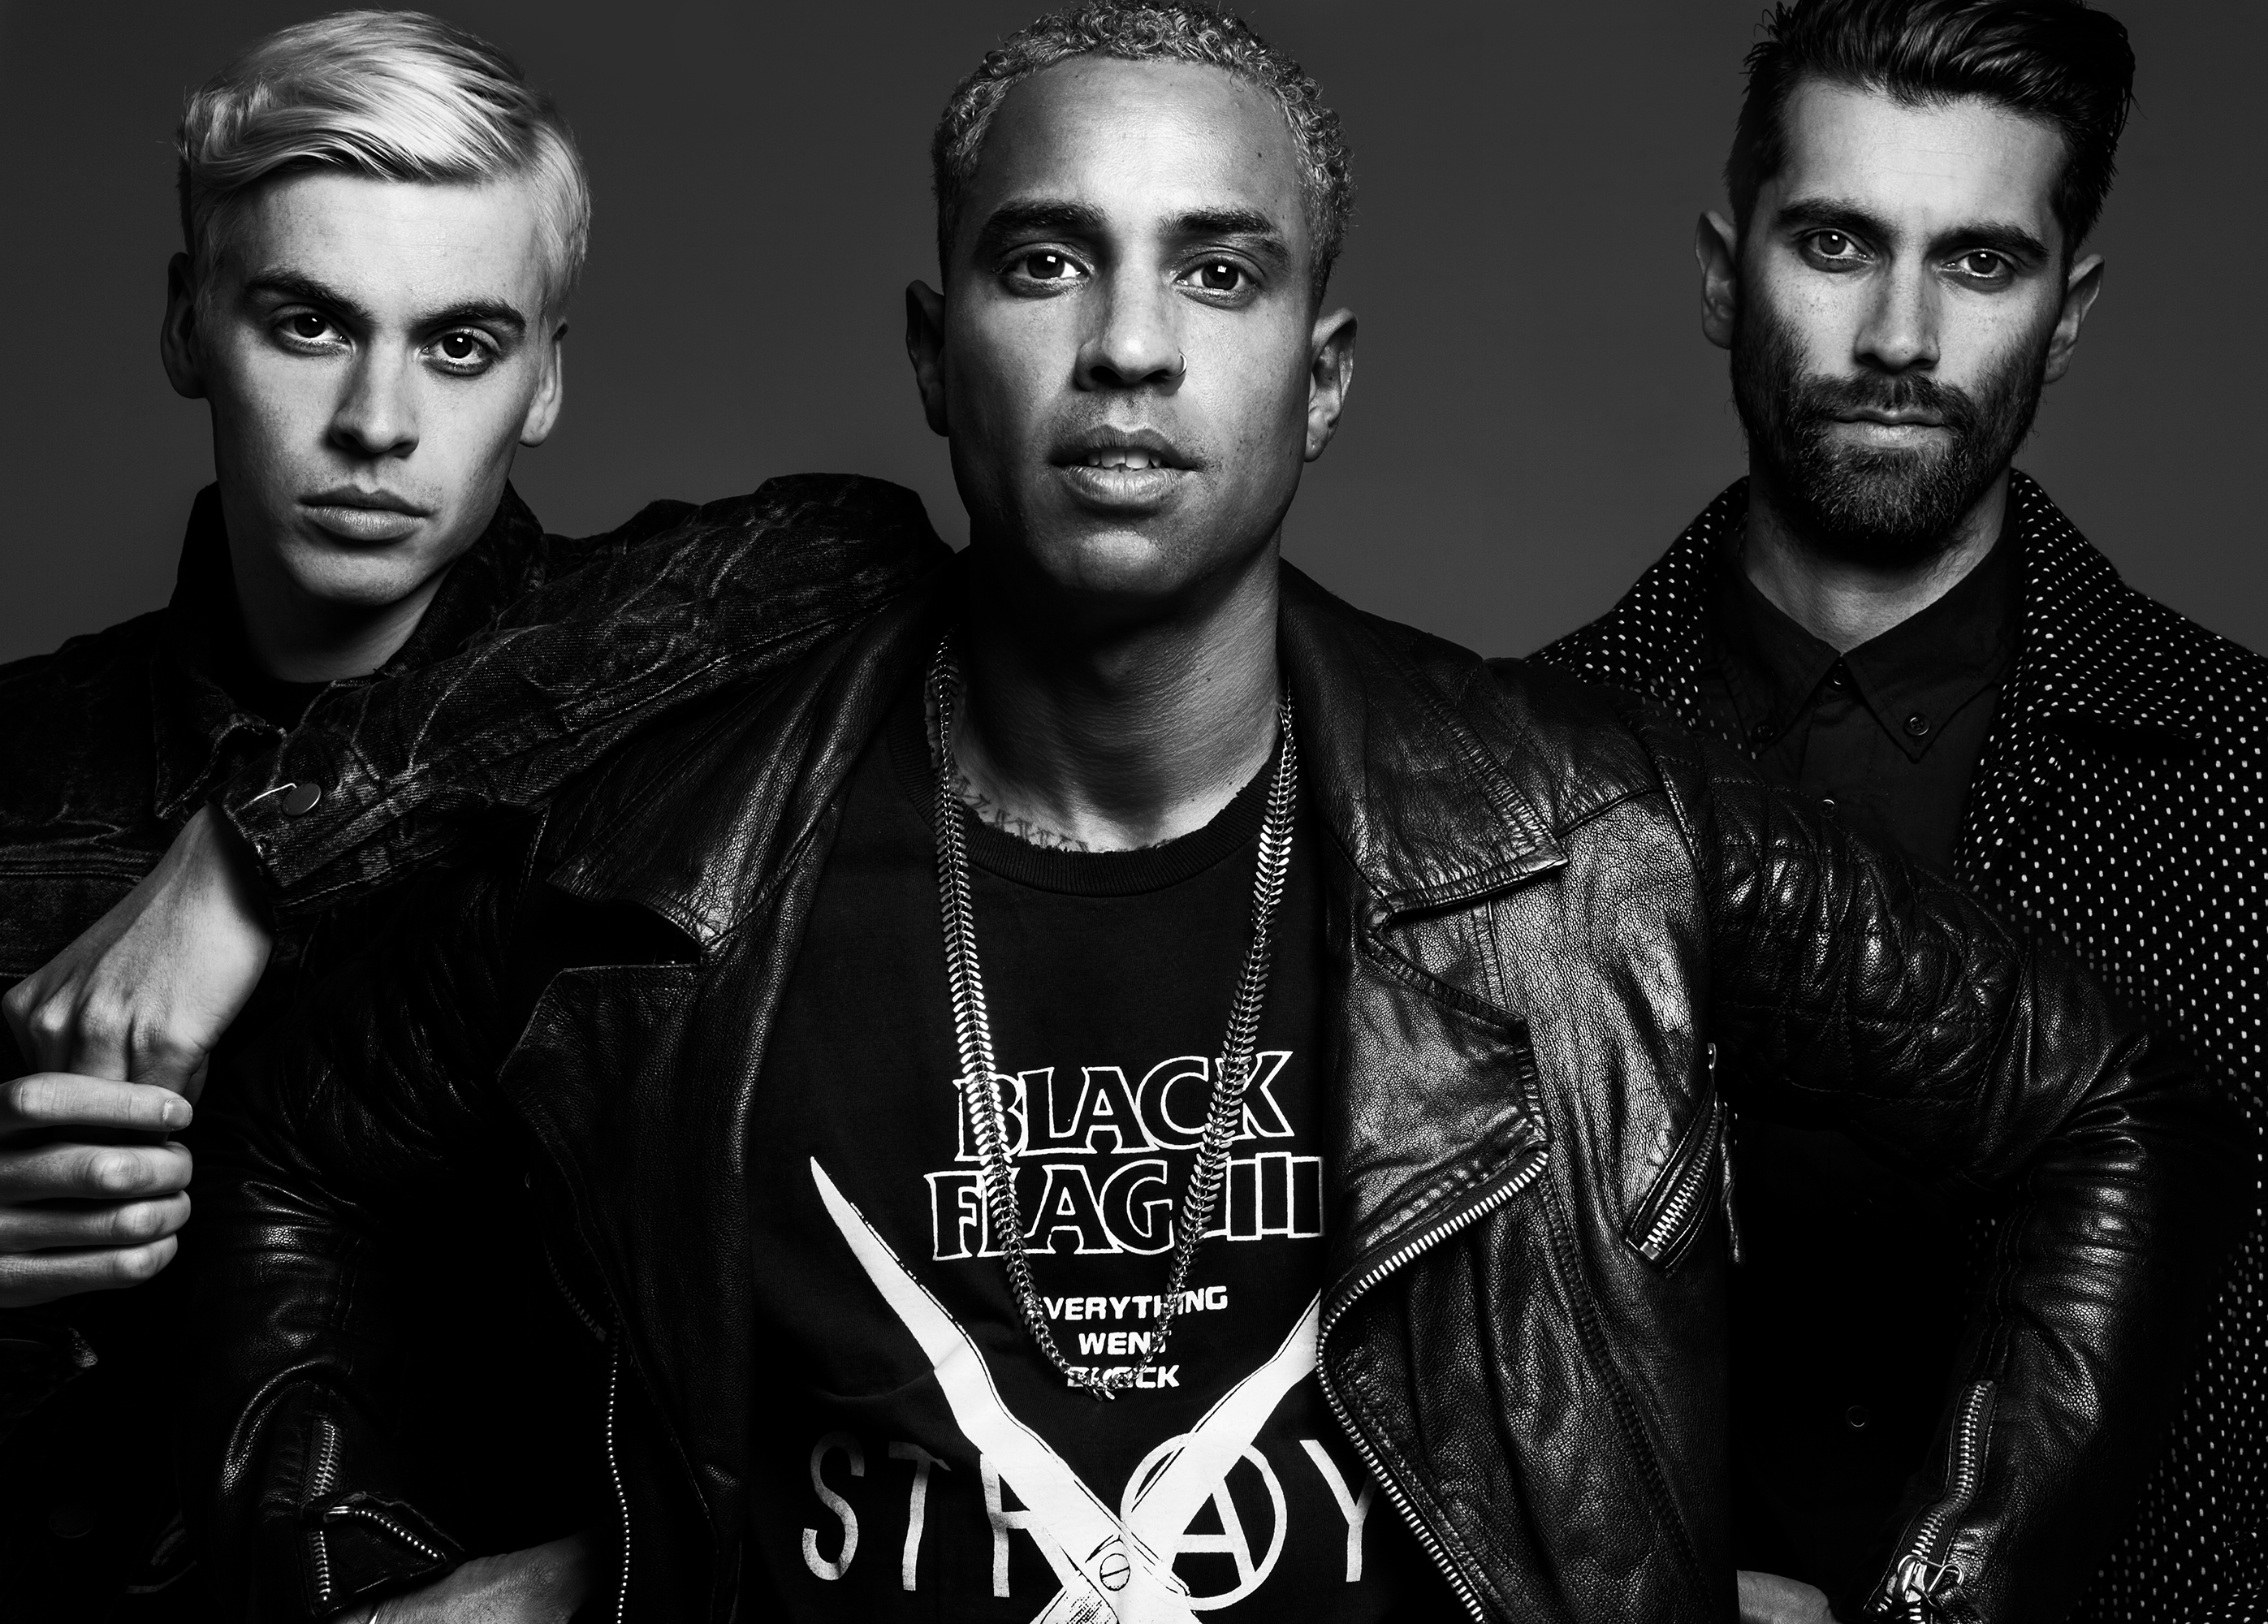 Yellow Claw interview edmchicago.com